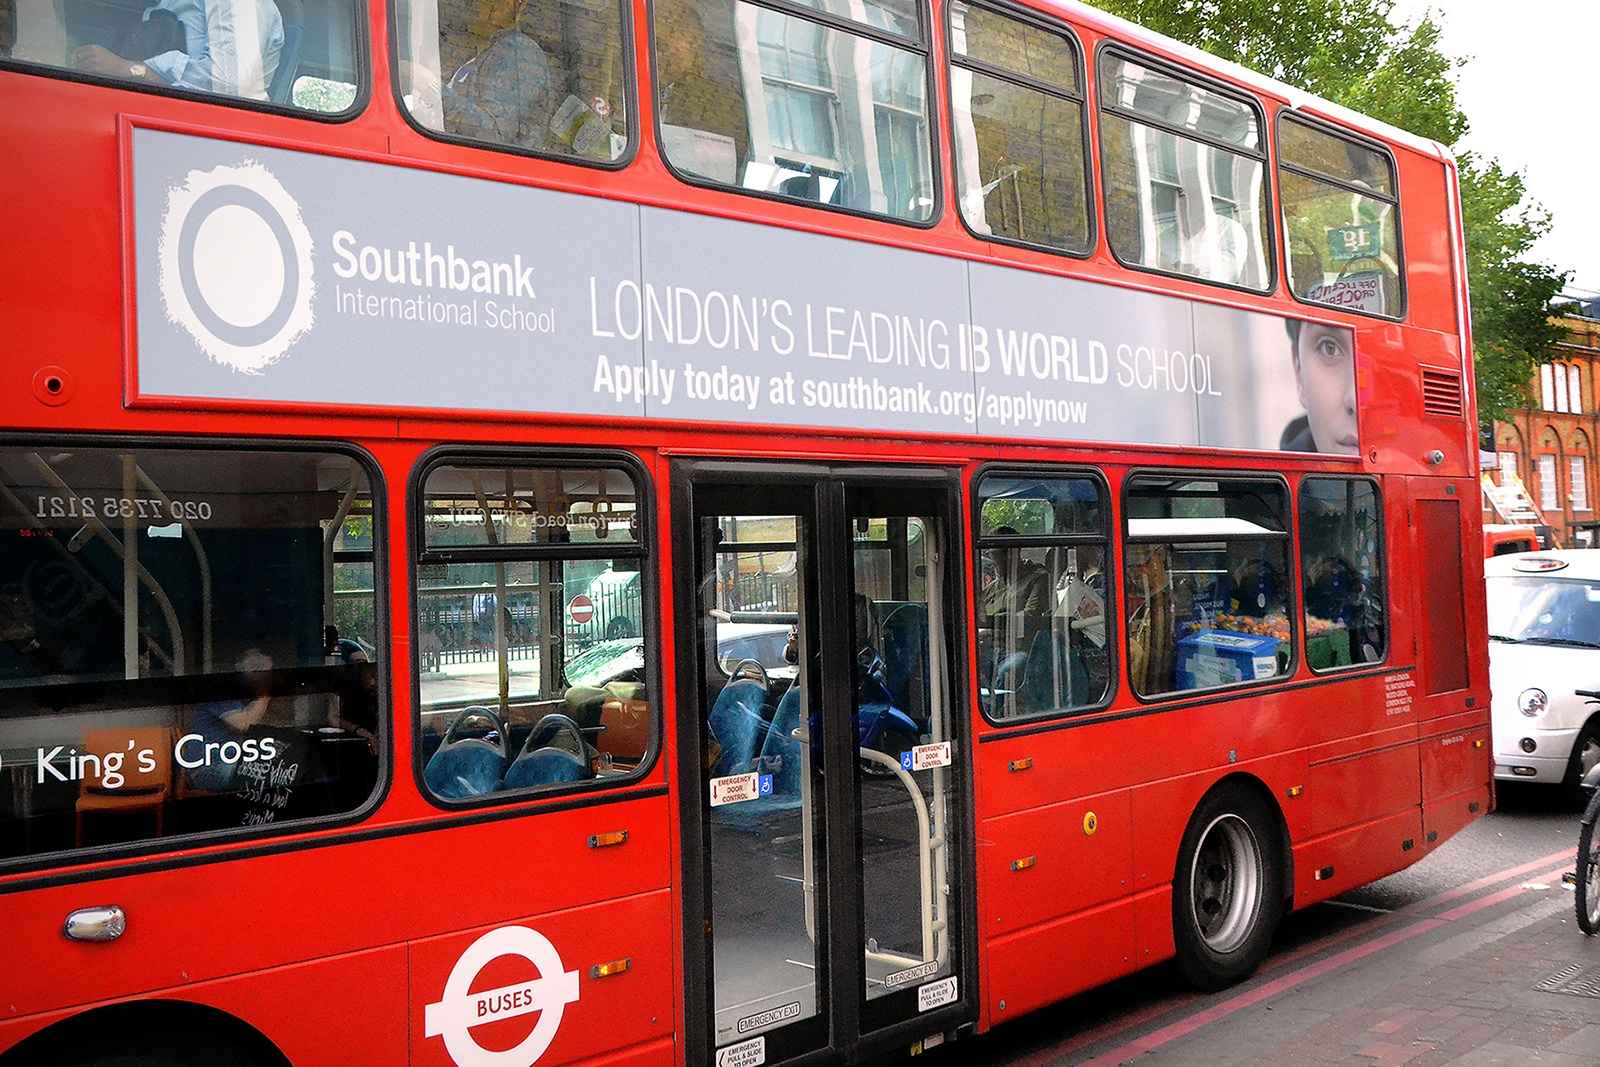 Image of the campaign identity on the side of a London bus